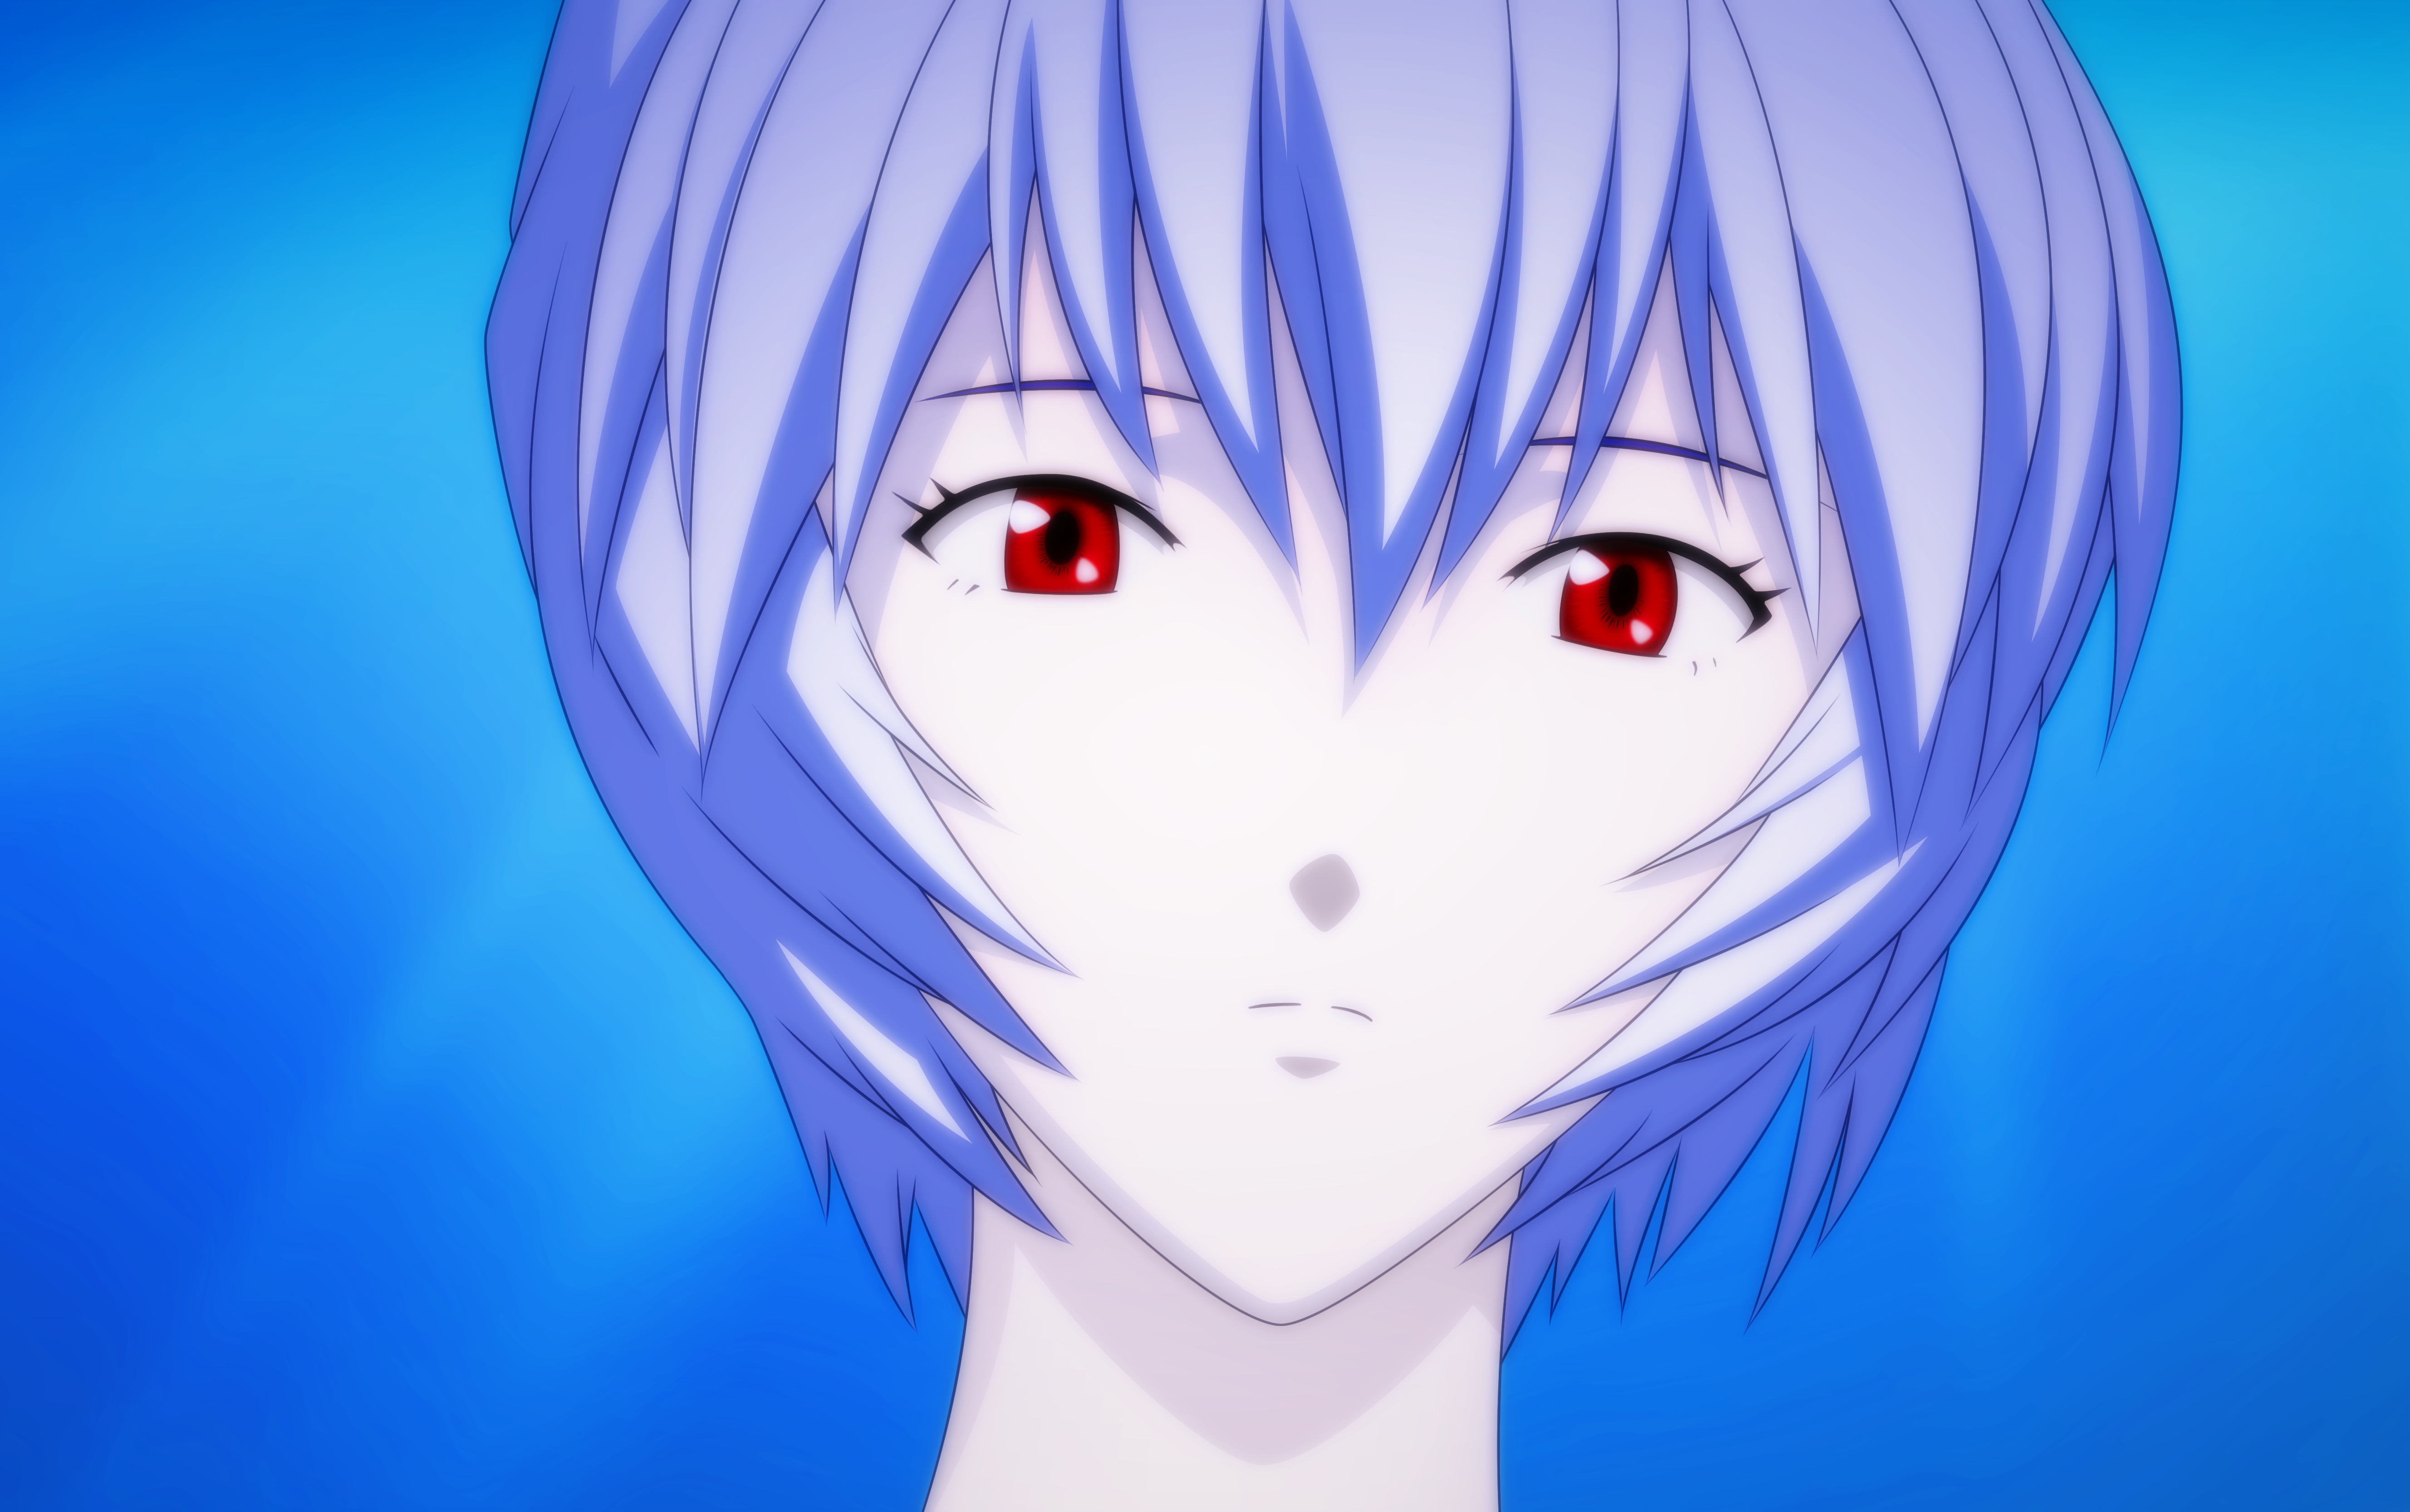 Rei Ayanami by ibireme